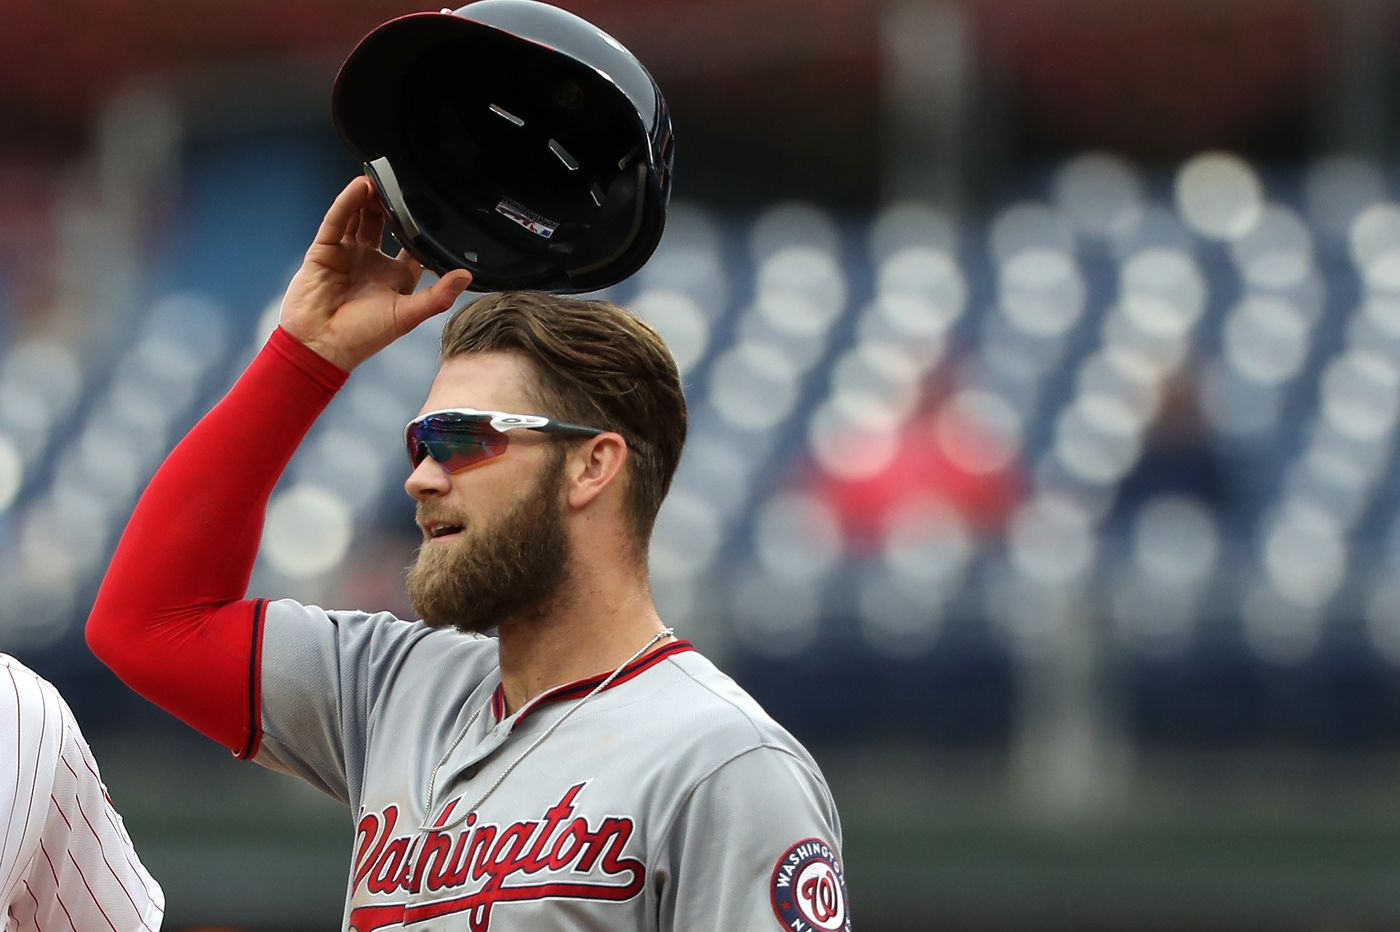 Phillies podcast: Bryce Harper meets with the Dodgers. So now what?